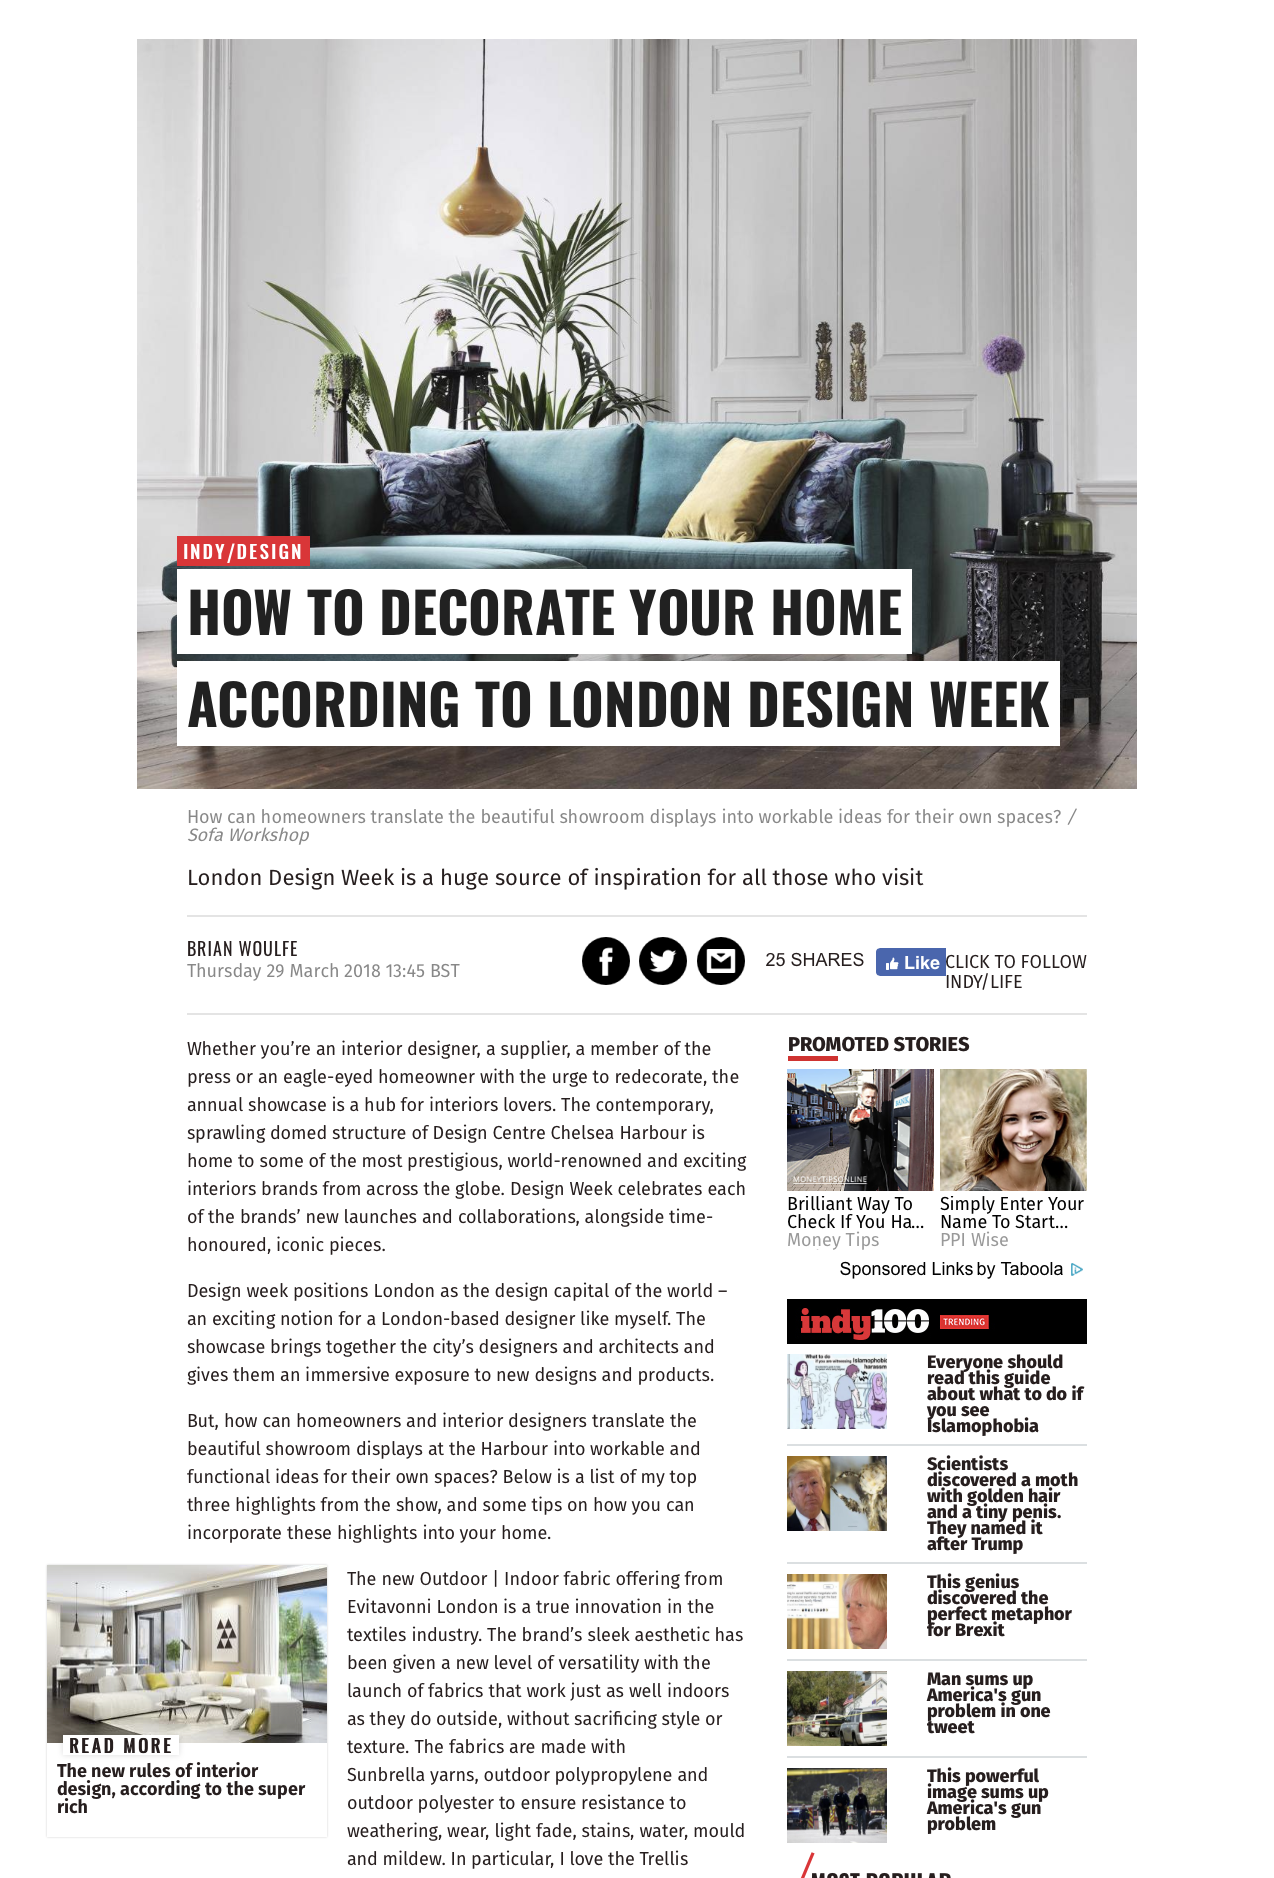 Brian Woulfe, Designed by Woulfe, The Independent